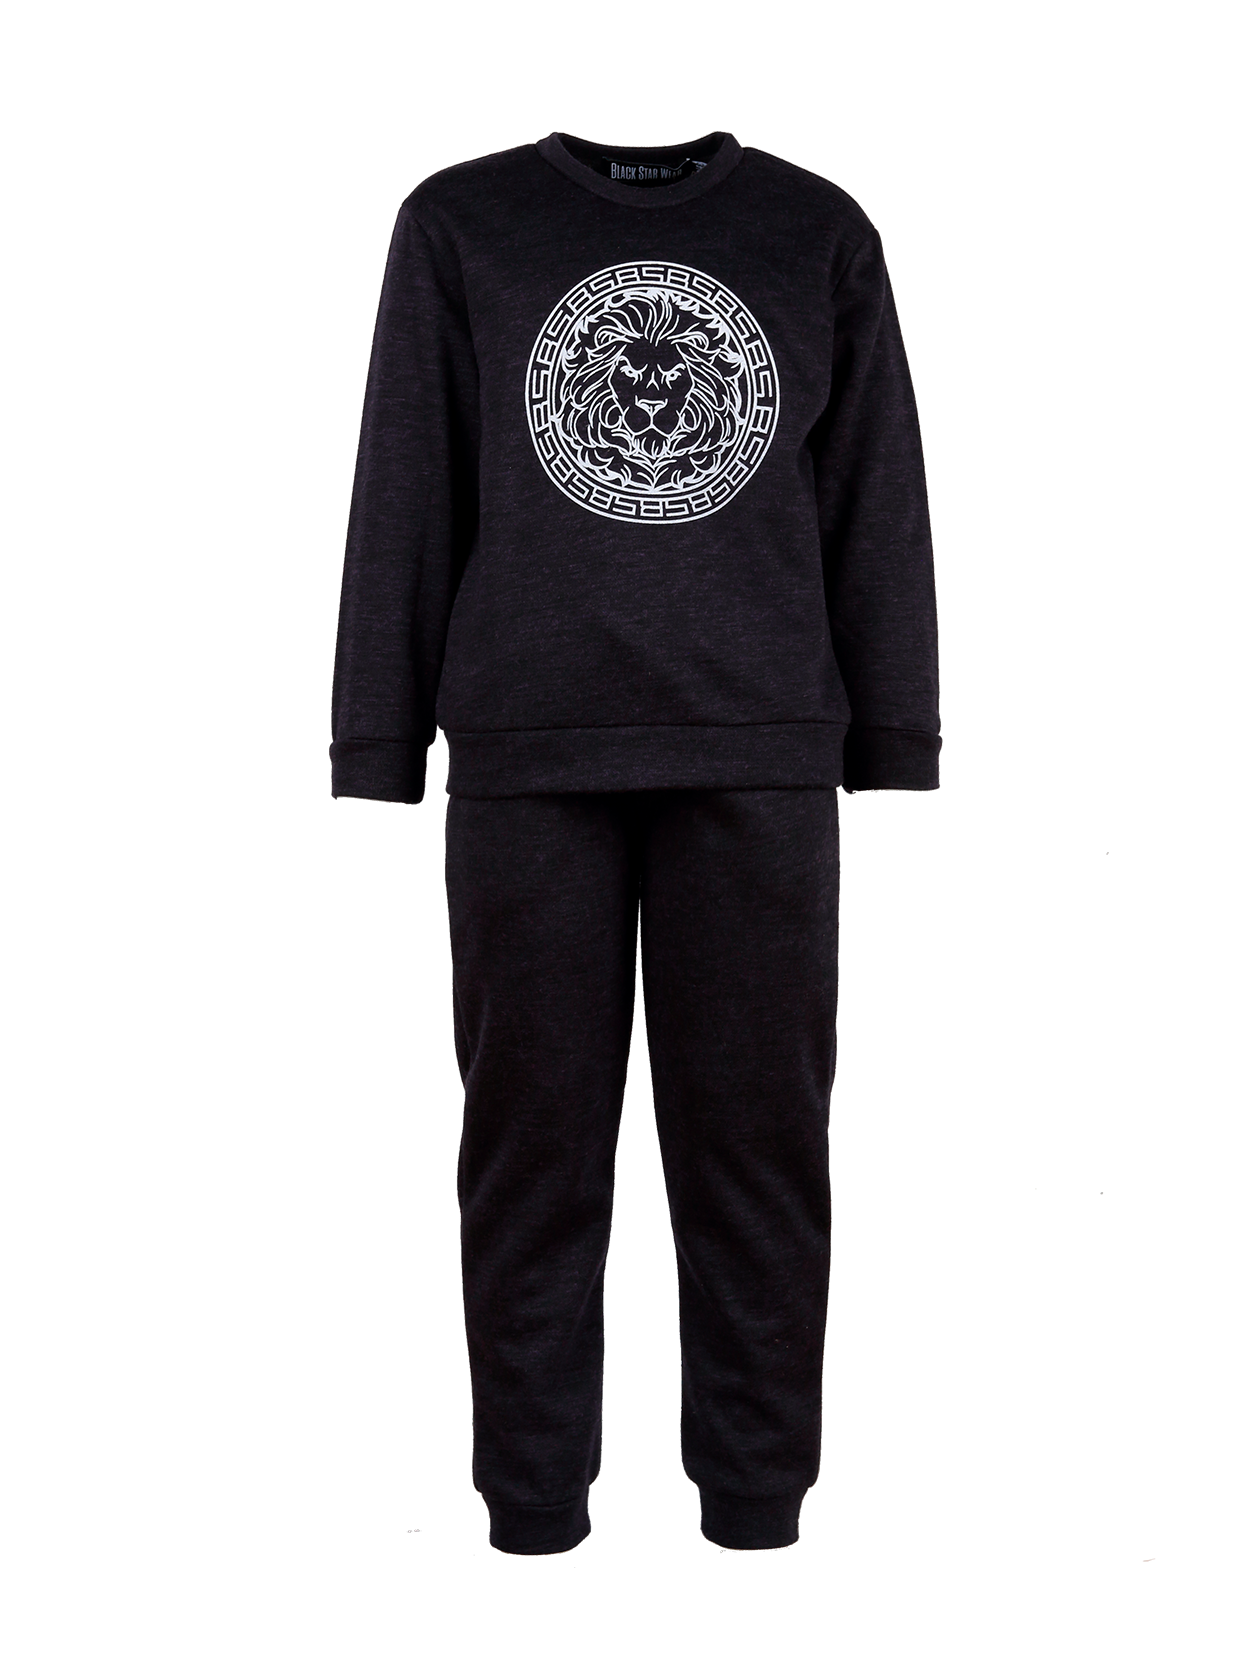 Kids sport suit Logo Black StarKids sweatshirt and sweatpants set by Black Star Wear. Sweatshirt with o-neck, cuffs, big print with lions head on the chest. Sweatpants with side pockets. Regular fit, natural cotton. Avaliable in royal purple and gray.<br><br>size: 9-10 years<br>color: Purple<br>gender: unisex